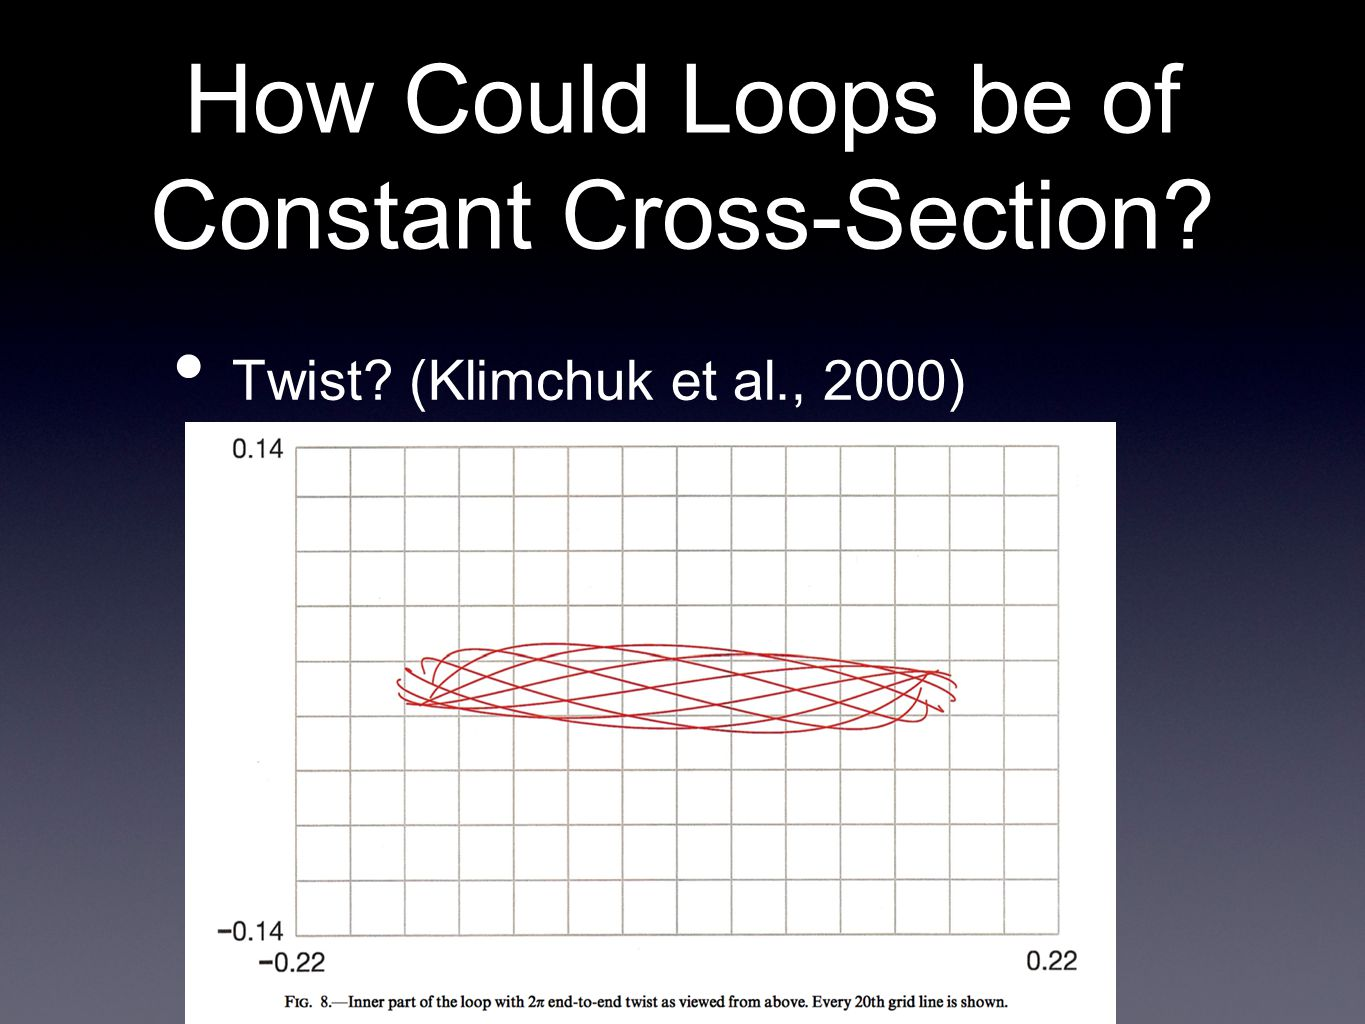 How Could Loops be of Constant Cross-Section Twist (Klimchuk et al., 2000)